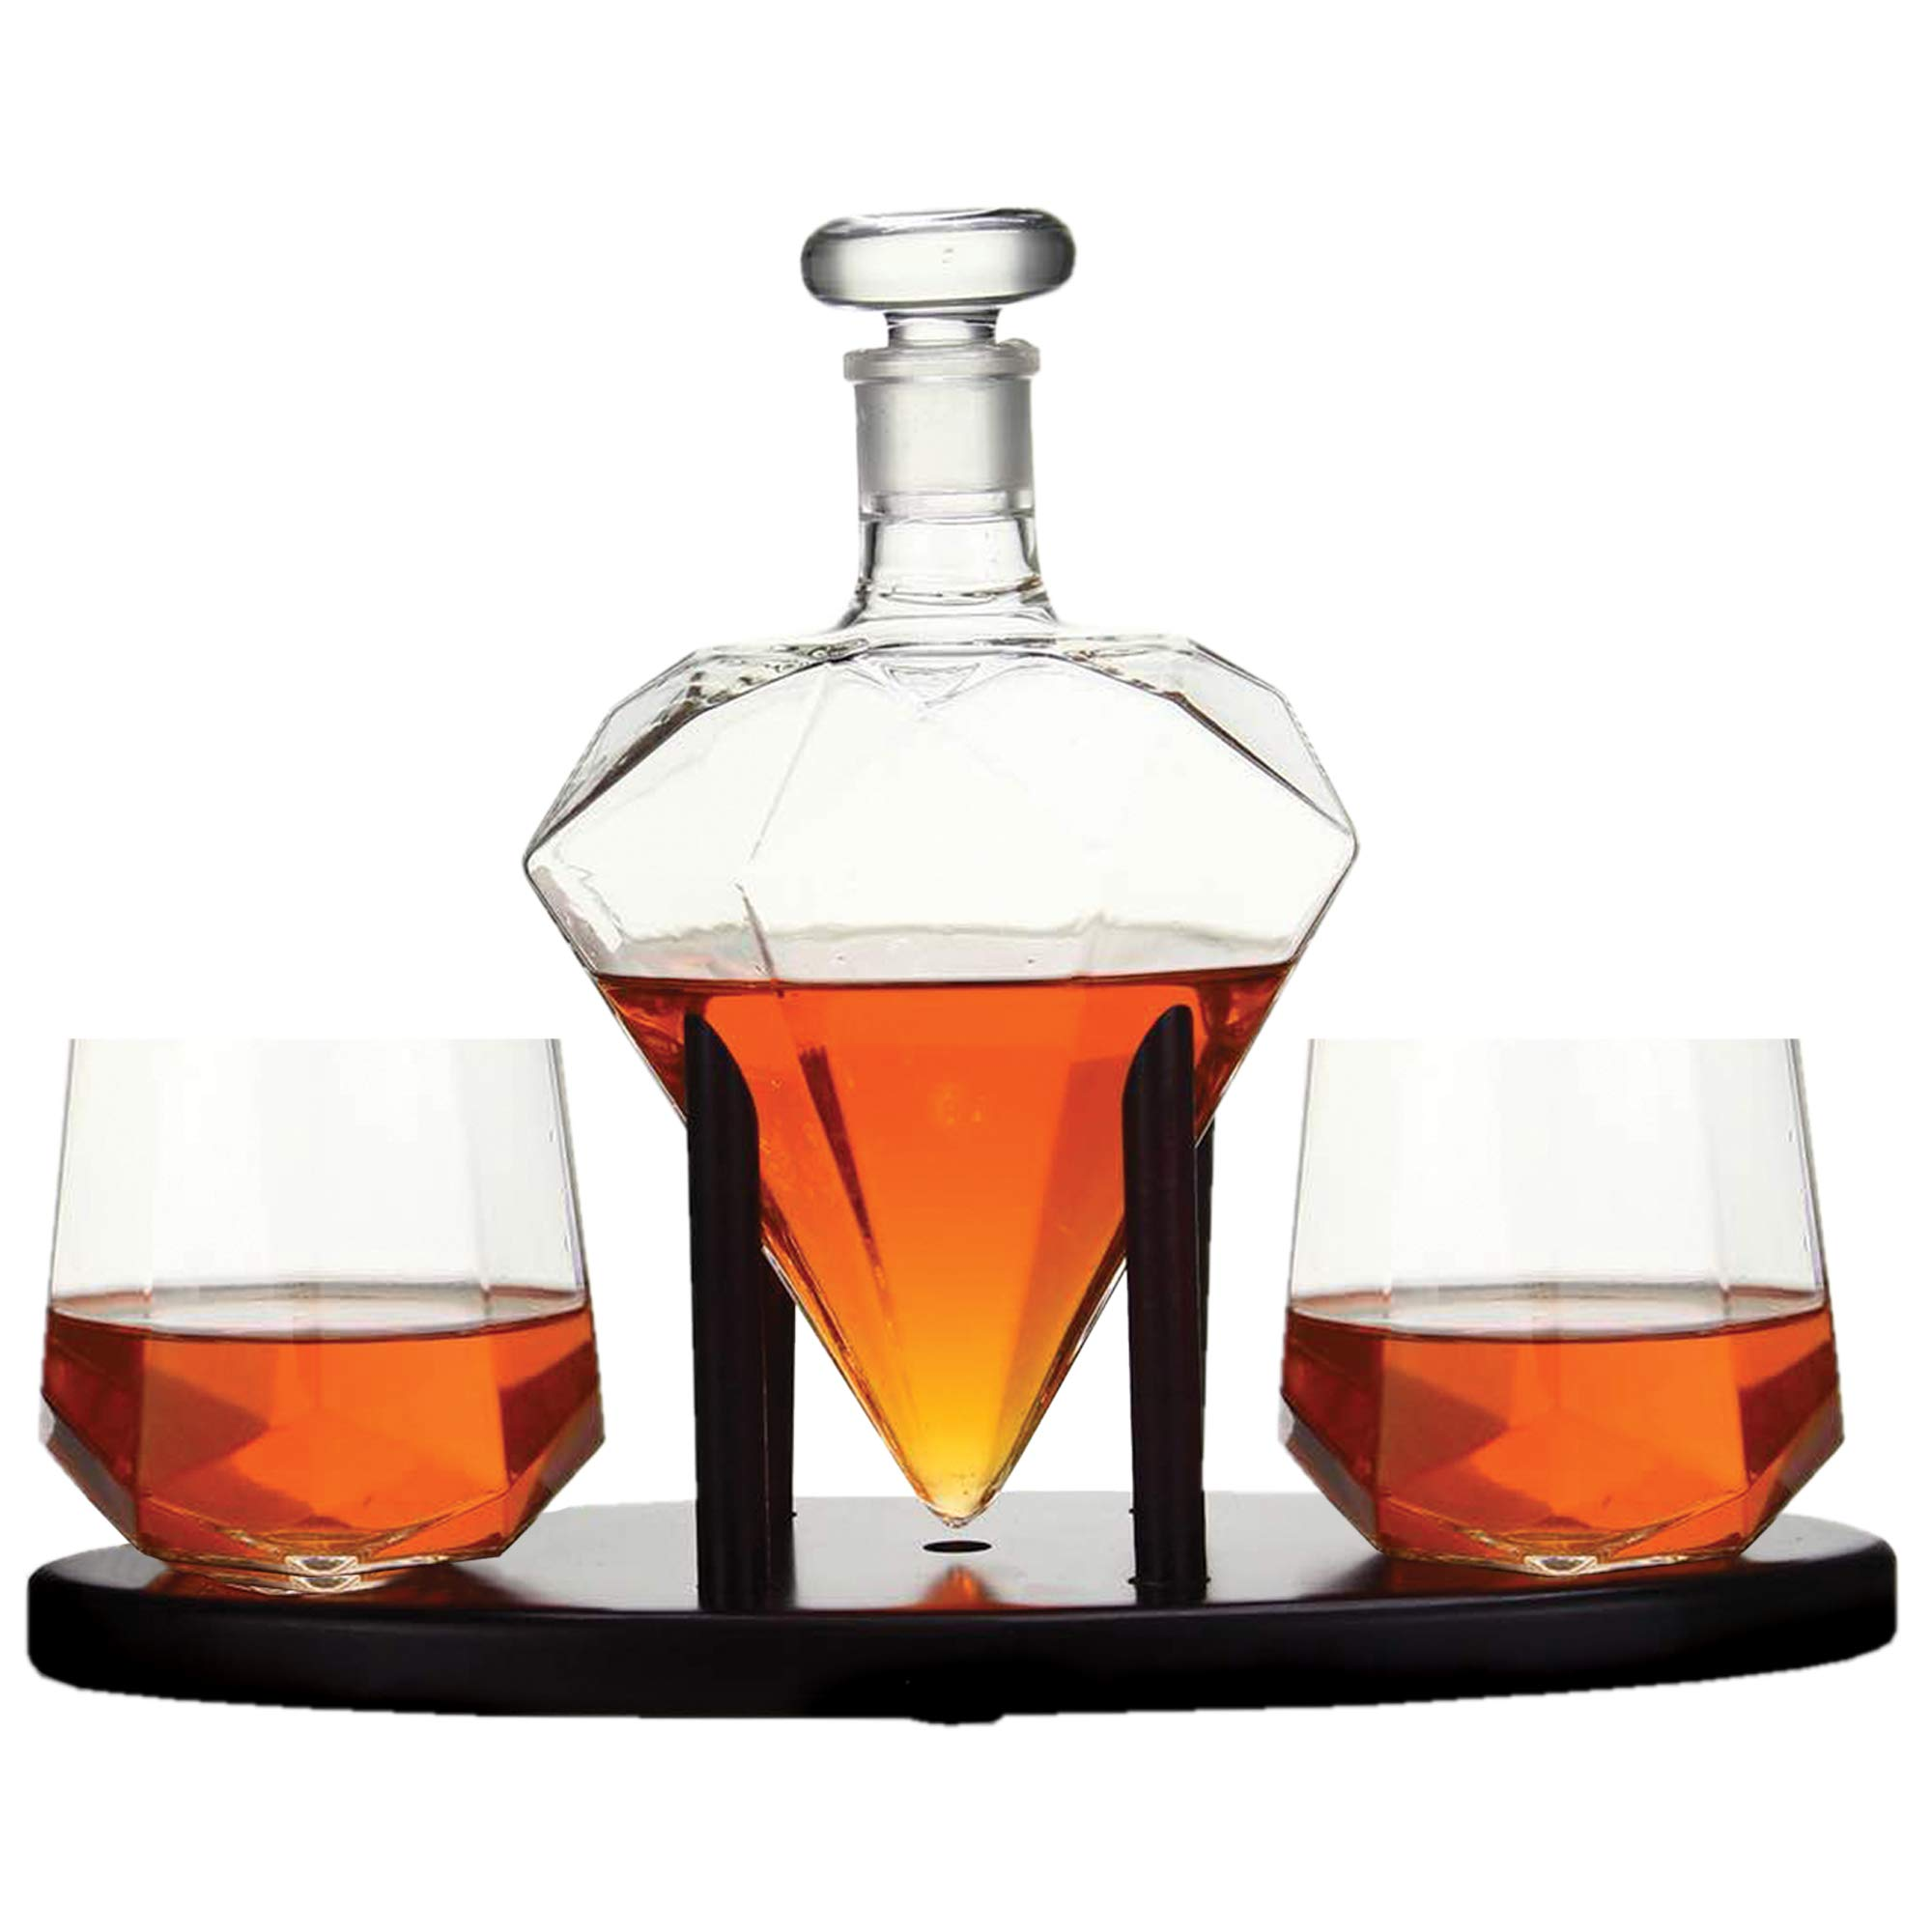 Whiskey Decanter Diamond shaped With 2 Diamond Glasses & Mahogany Wooden Holder - Elegant Handcrafted Crafted Glass Decanter For Liquor, Scotch, Rum, Bourbon, Vodka, Tequila - Great Gift Idea - 750ml by RUGLUSH (Image #7)